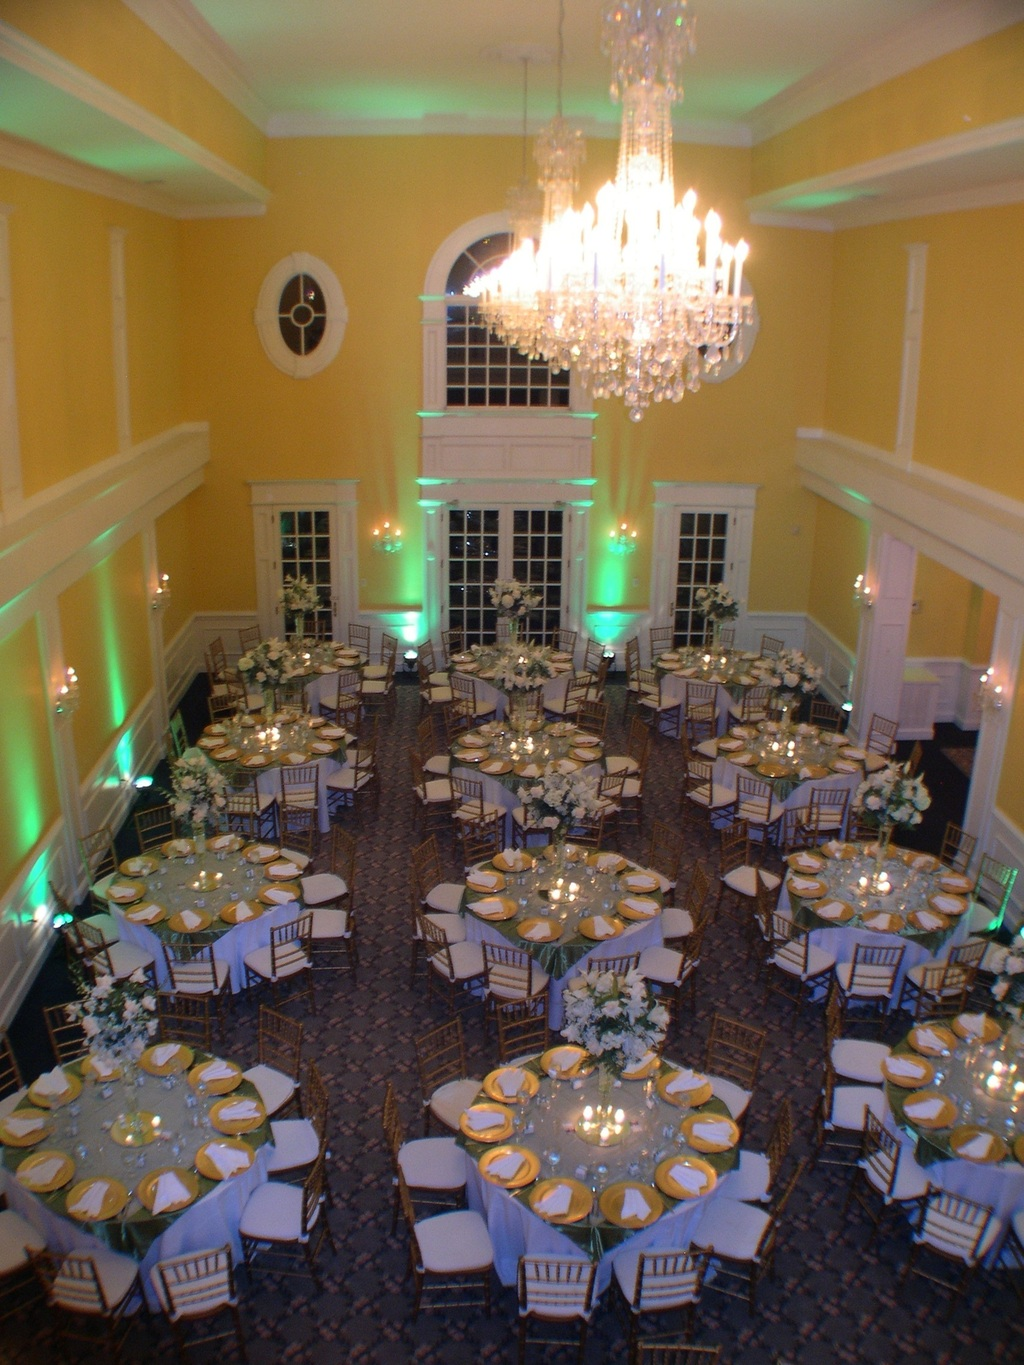 Ballroom%20with%20chandeliers.full